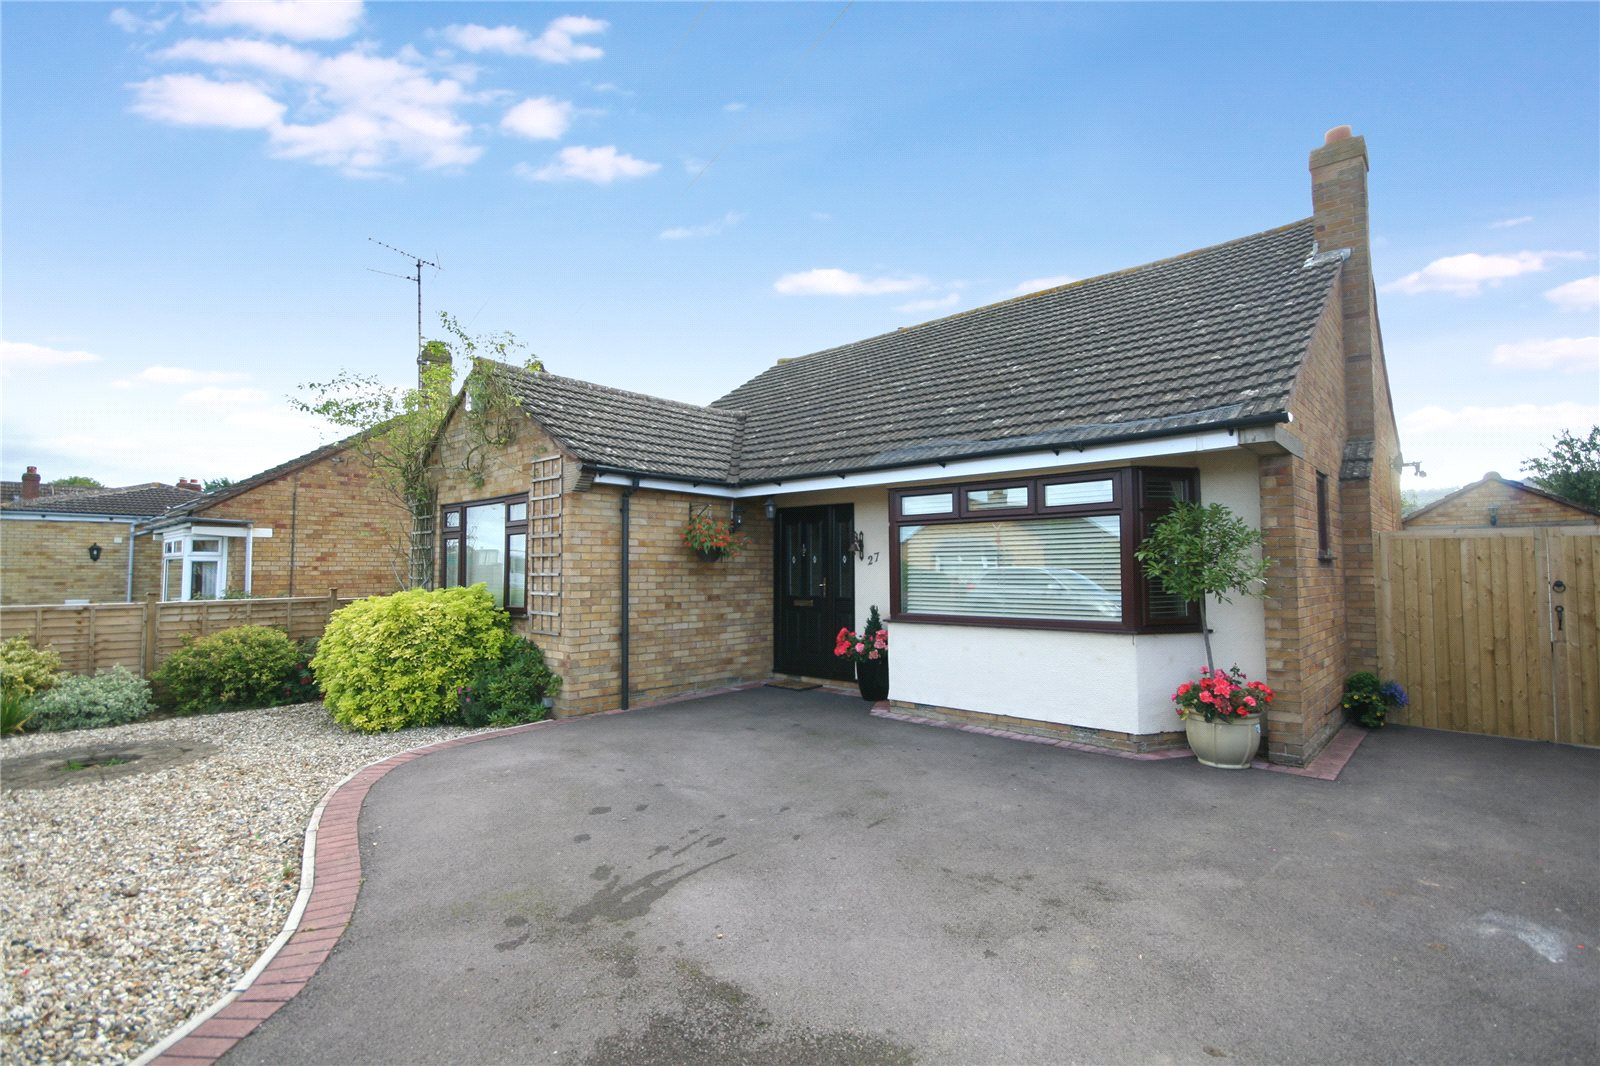 3 Bedrooms Bungalow for sale in Lambert Avenue Shurdington Cheltenham GL51